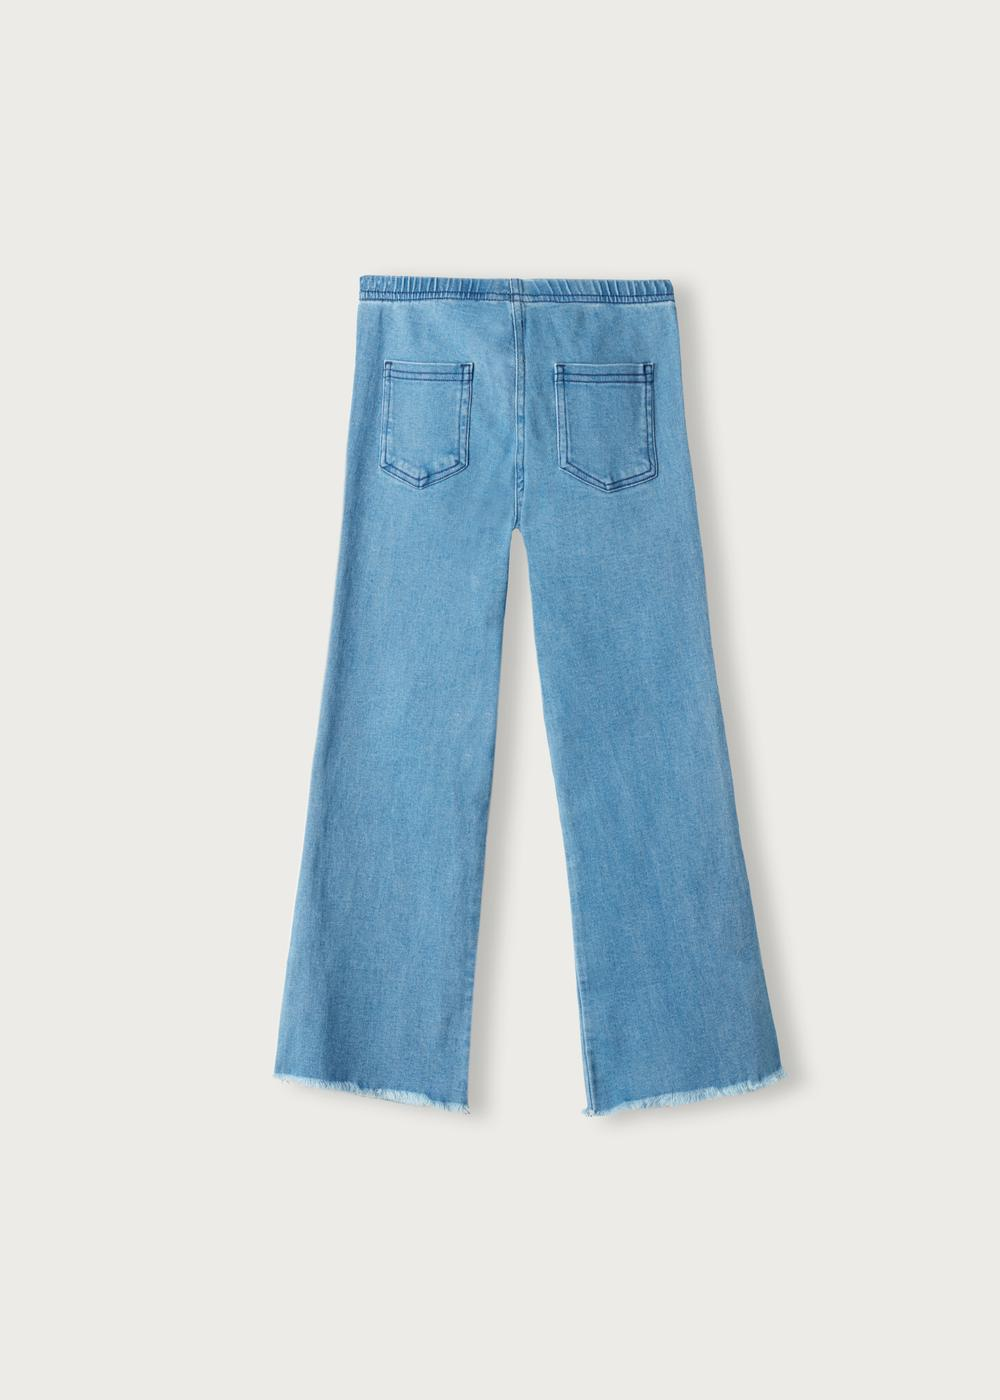 Jeggings Denim Cropped Flare